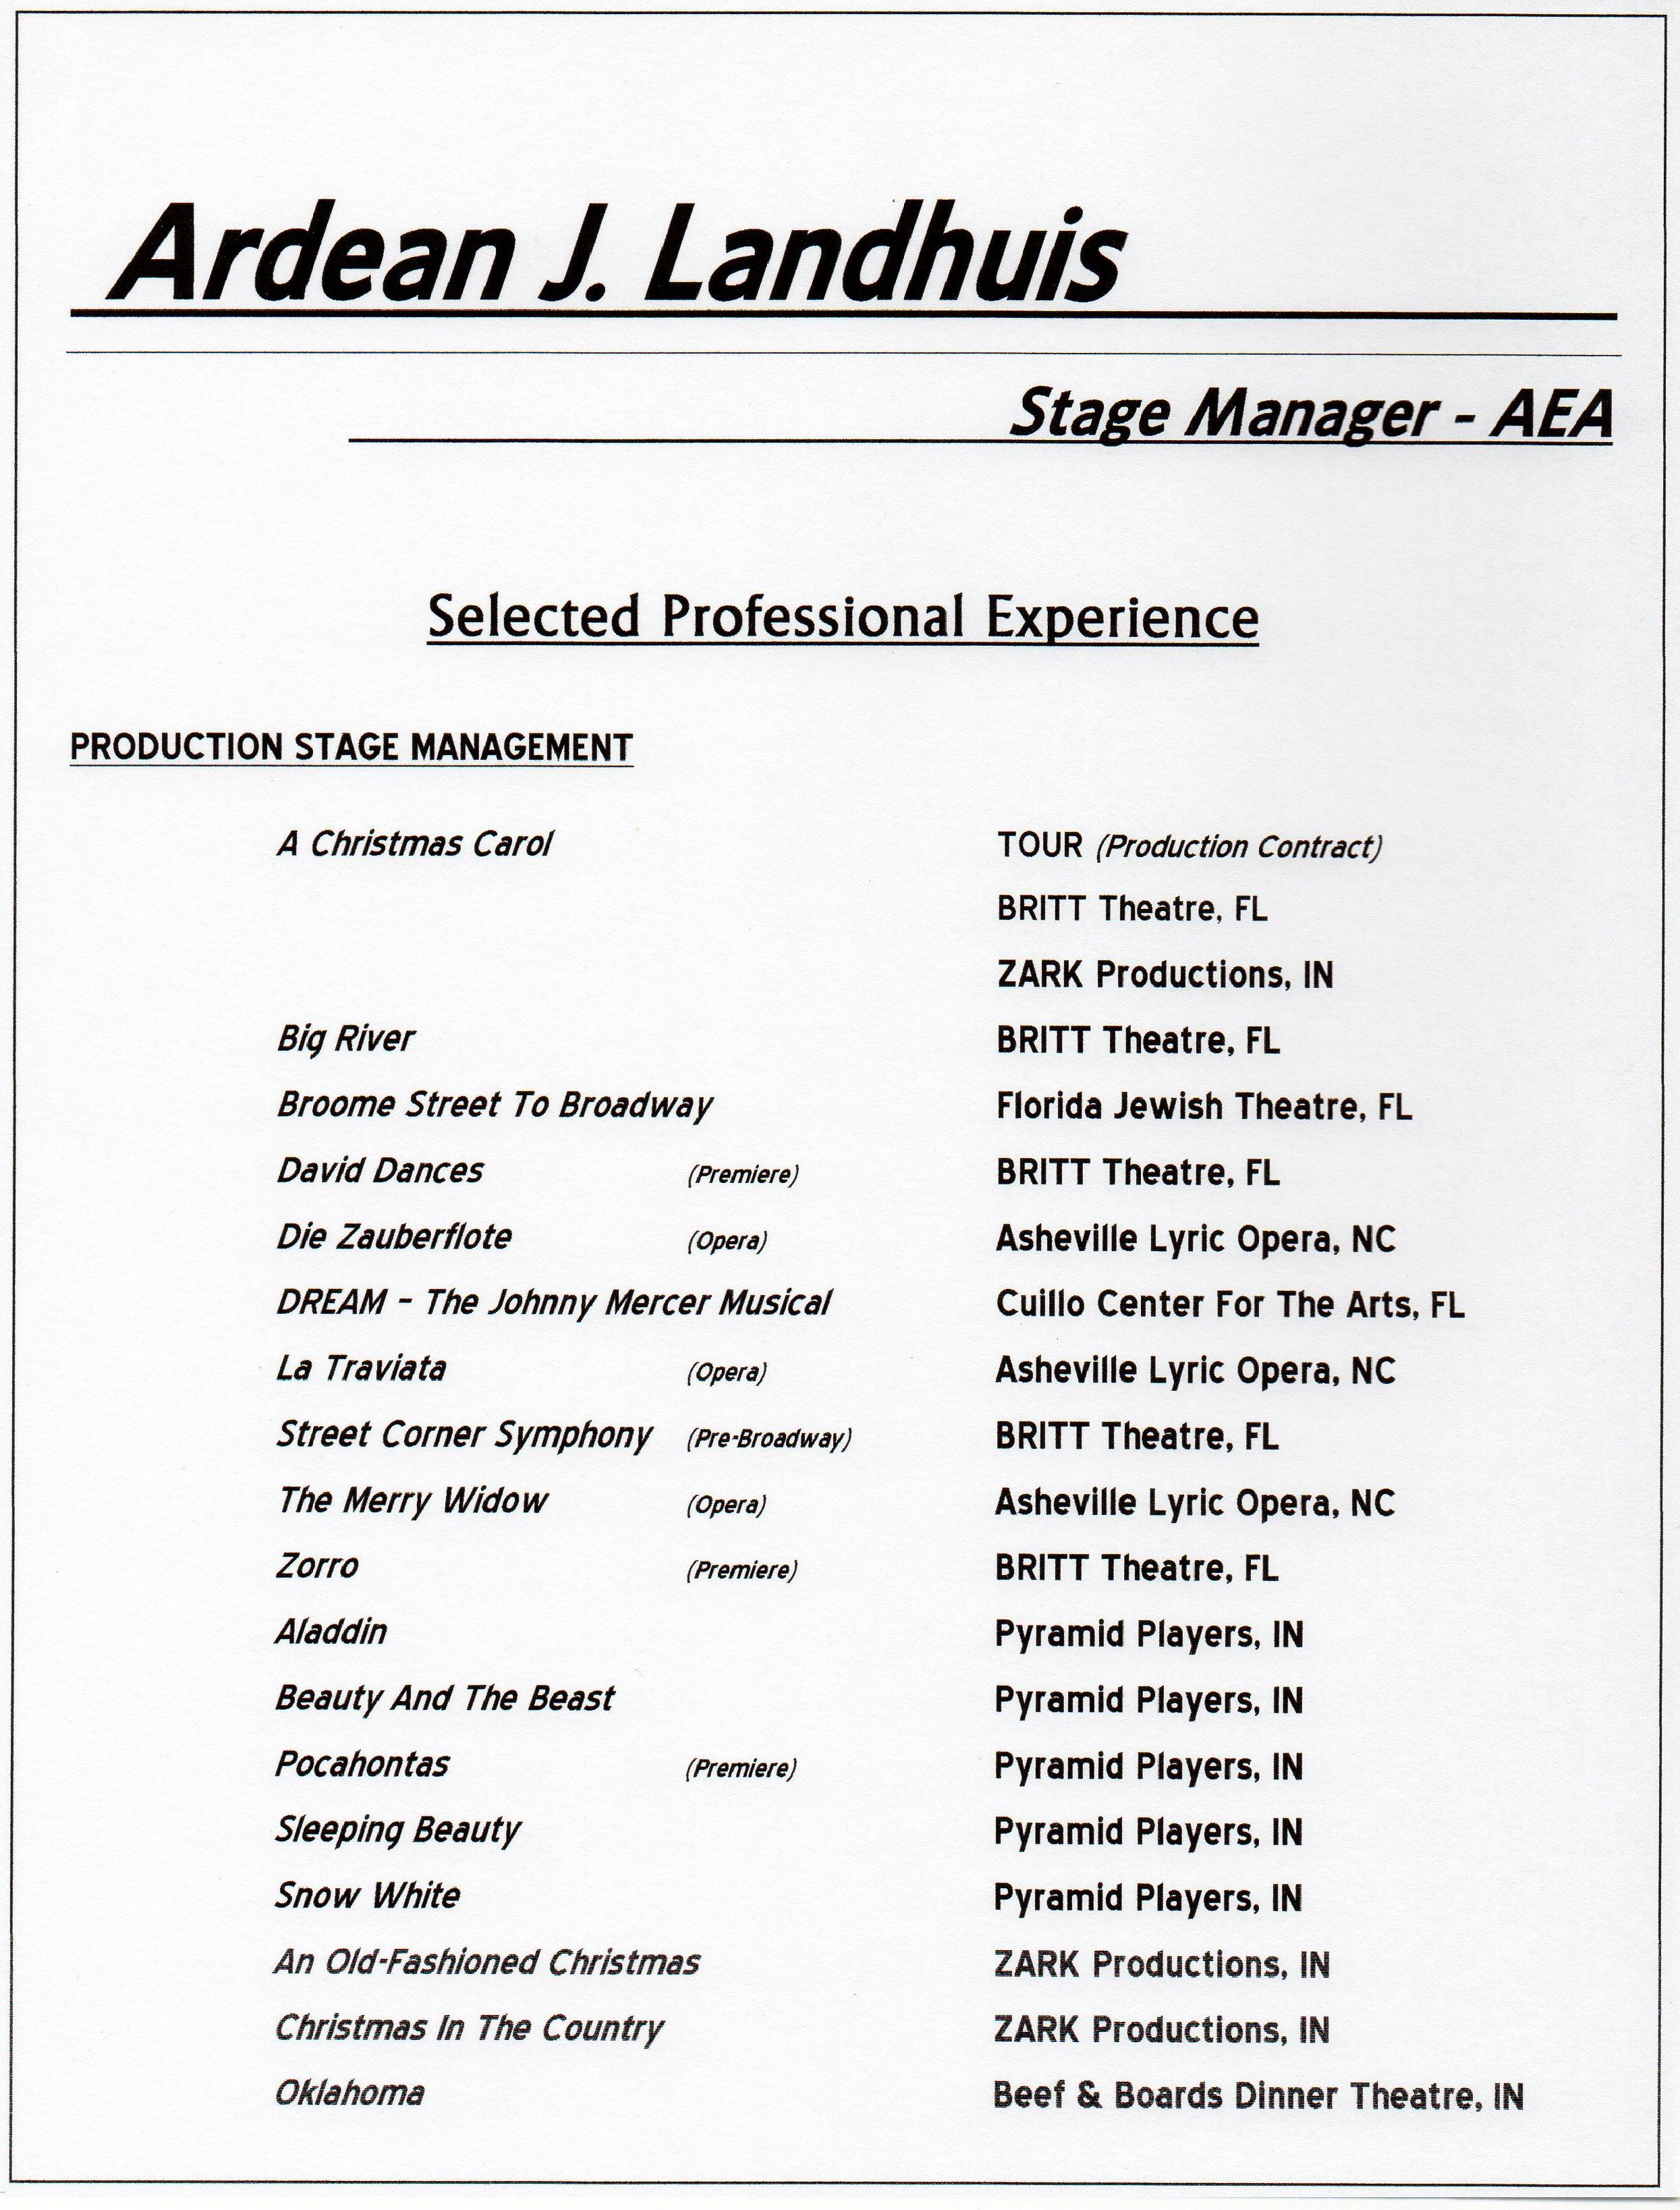 Stage Management Resume` » Ardean J. Landhuis - Performing Arts